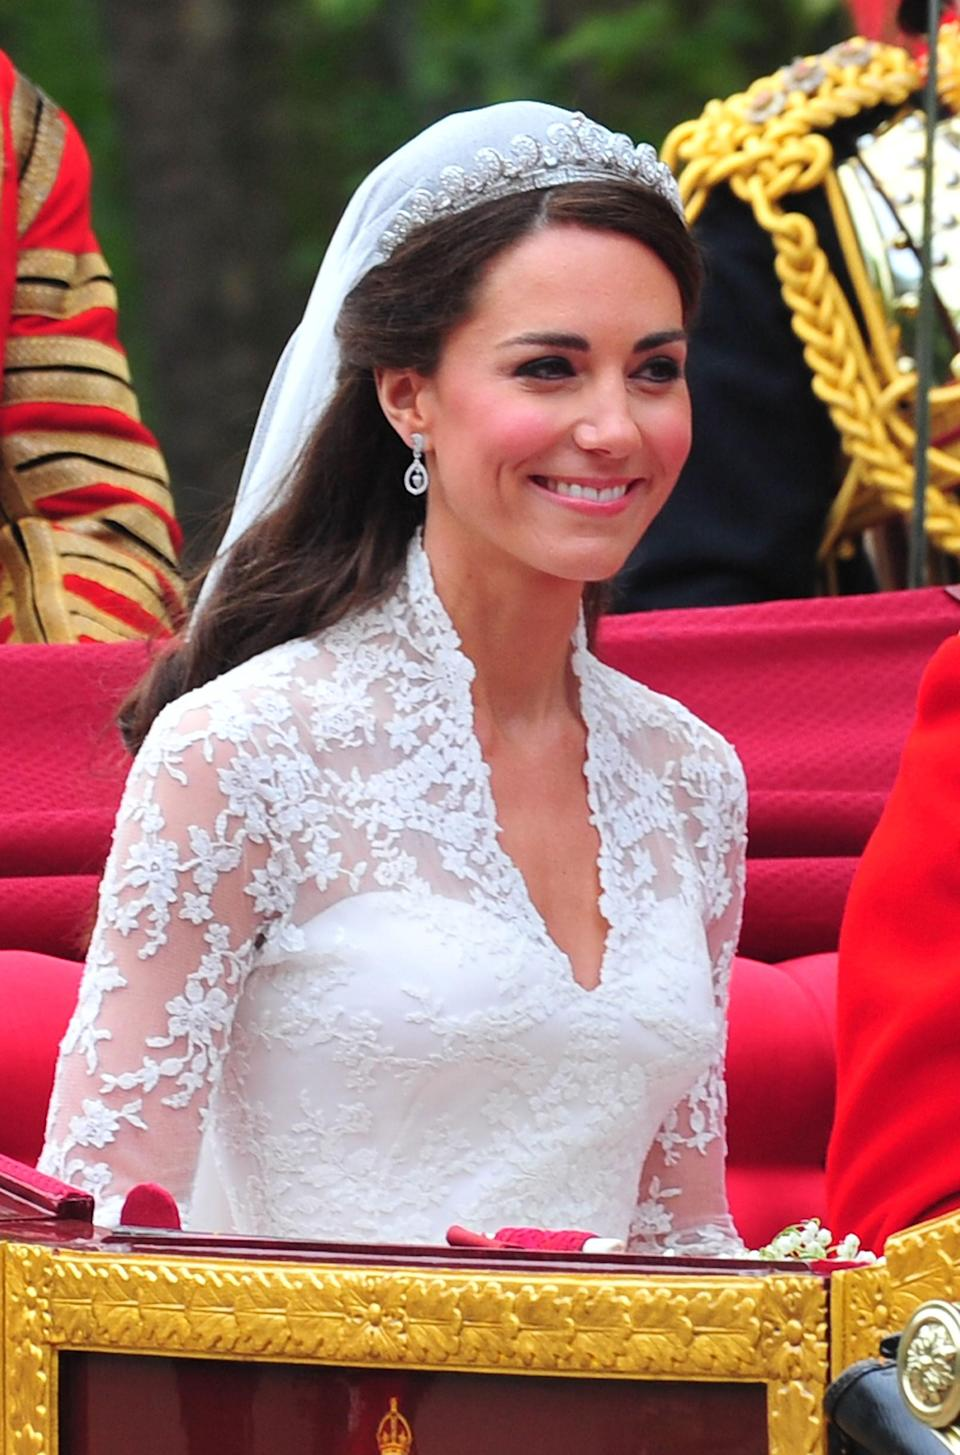 "It's been nearly a decade since Kate tied the knot with <a href=""https://www.glamour.com/about/prince-william?mbid=synd_yahoo_rss"" rel=""nofollow noopener"" target=""_blank"" data-ylk=""slk:Prince William"" class=""link rapid-noclick-resp"">Prince William</a>, but only recently did the beauty brand Bobbi Brown confirm to <em>Glamour</em> that she wore <a href=""https://www.glamour.com/story/kate-middleton-favorite-lipstick?mbid=synd_yahoo_rss"" rel=""nofollow noopener"" target=""_blank"" data-ylk=""slk:one of its lipsticks"" class=""link rapid-noclick-resp"">one of its lipsticks</a> as she walked down the aisle. (The exact shade is <a href=""https://shop-links.co/1724615541111073311"" rel=""nofollow noopener"" target=""_blank"" data-ylk=""slk:Sandwash Pink"" class=""link rapid-noclick-resp"">Sandwash Pink</a>.) And while we're pretty sure many of you have taken the opportunity to <a href=""https://www.glamour.com/story/self-isolation-has-truly-changed-my-relationship-with-makeup?mbid=synd_yahoo_rss"" rel=""nofollow noopener"" target=""_blank"" data-ylk=""slk:go makeup-free"" class=""link rapid-noclick-resp"">go makeup-free</a> during lockdown, that doesn't mean there aren't value sets (lip trios for only $43?!) too good to pass up."